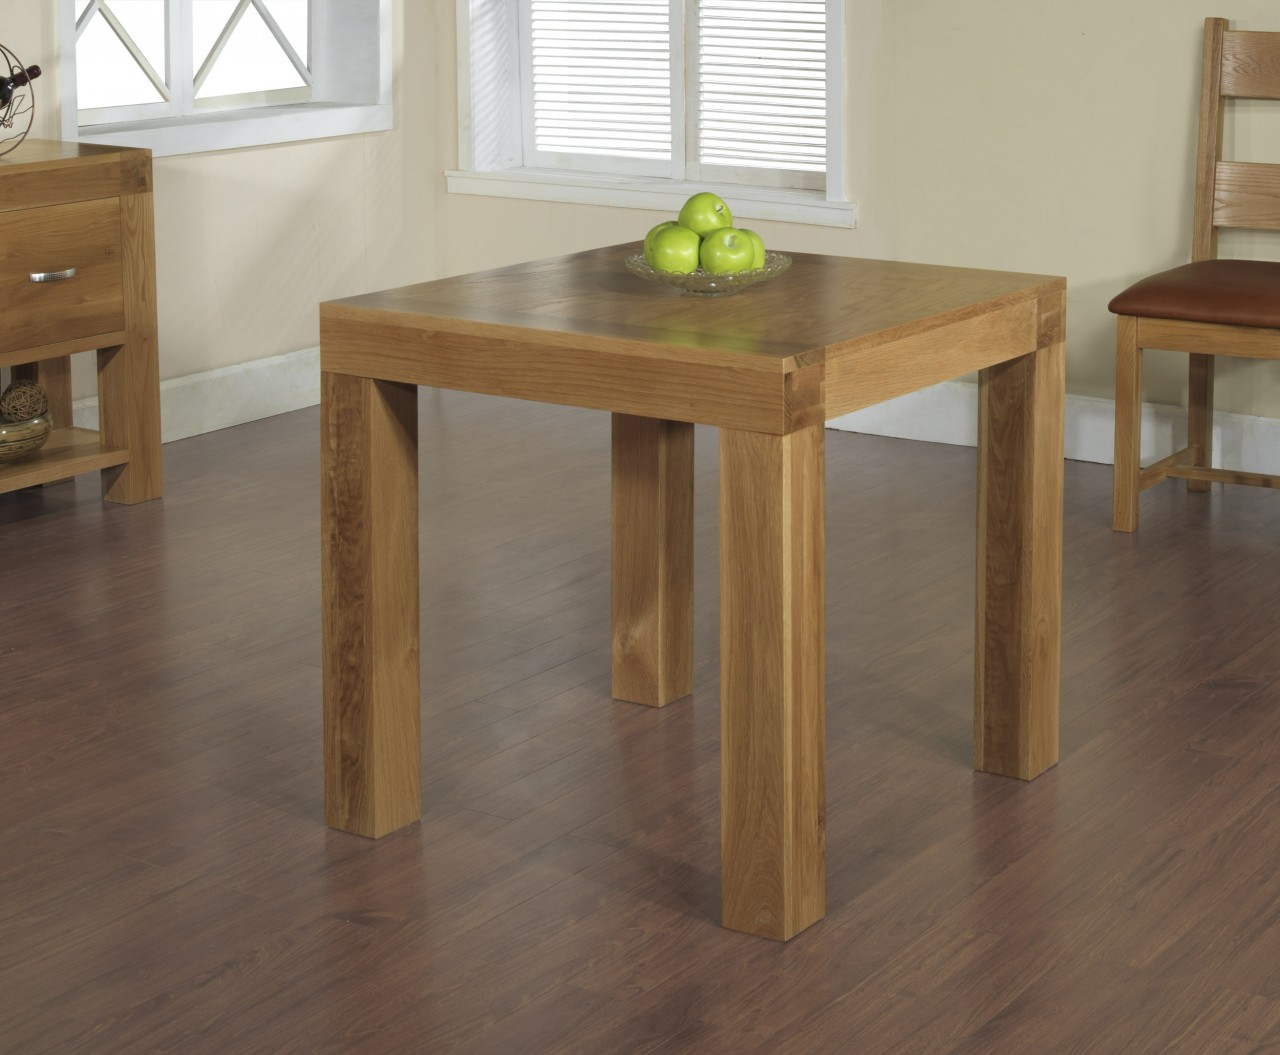 clifton solid oak furniture small square dining table 80cm. Black Bedroom Furniture Sets. Home Design Ideas